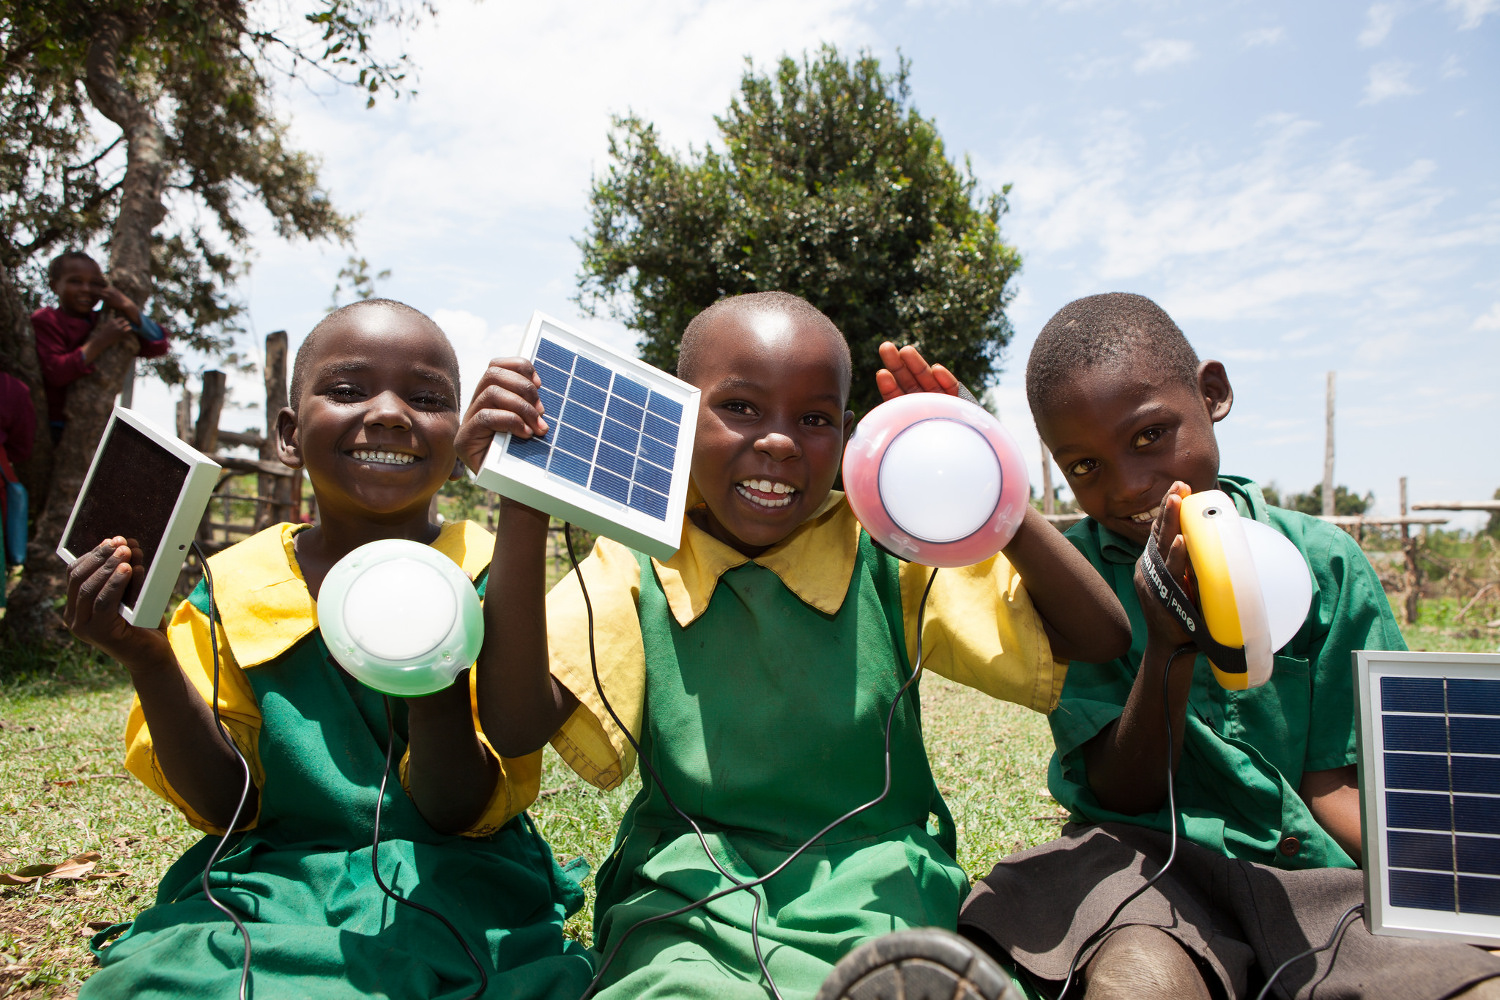 African kids with lights and solar panels